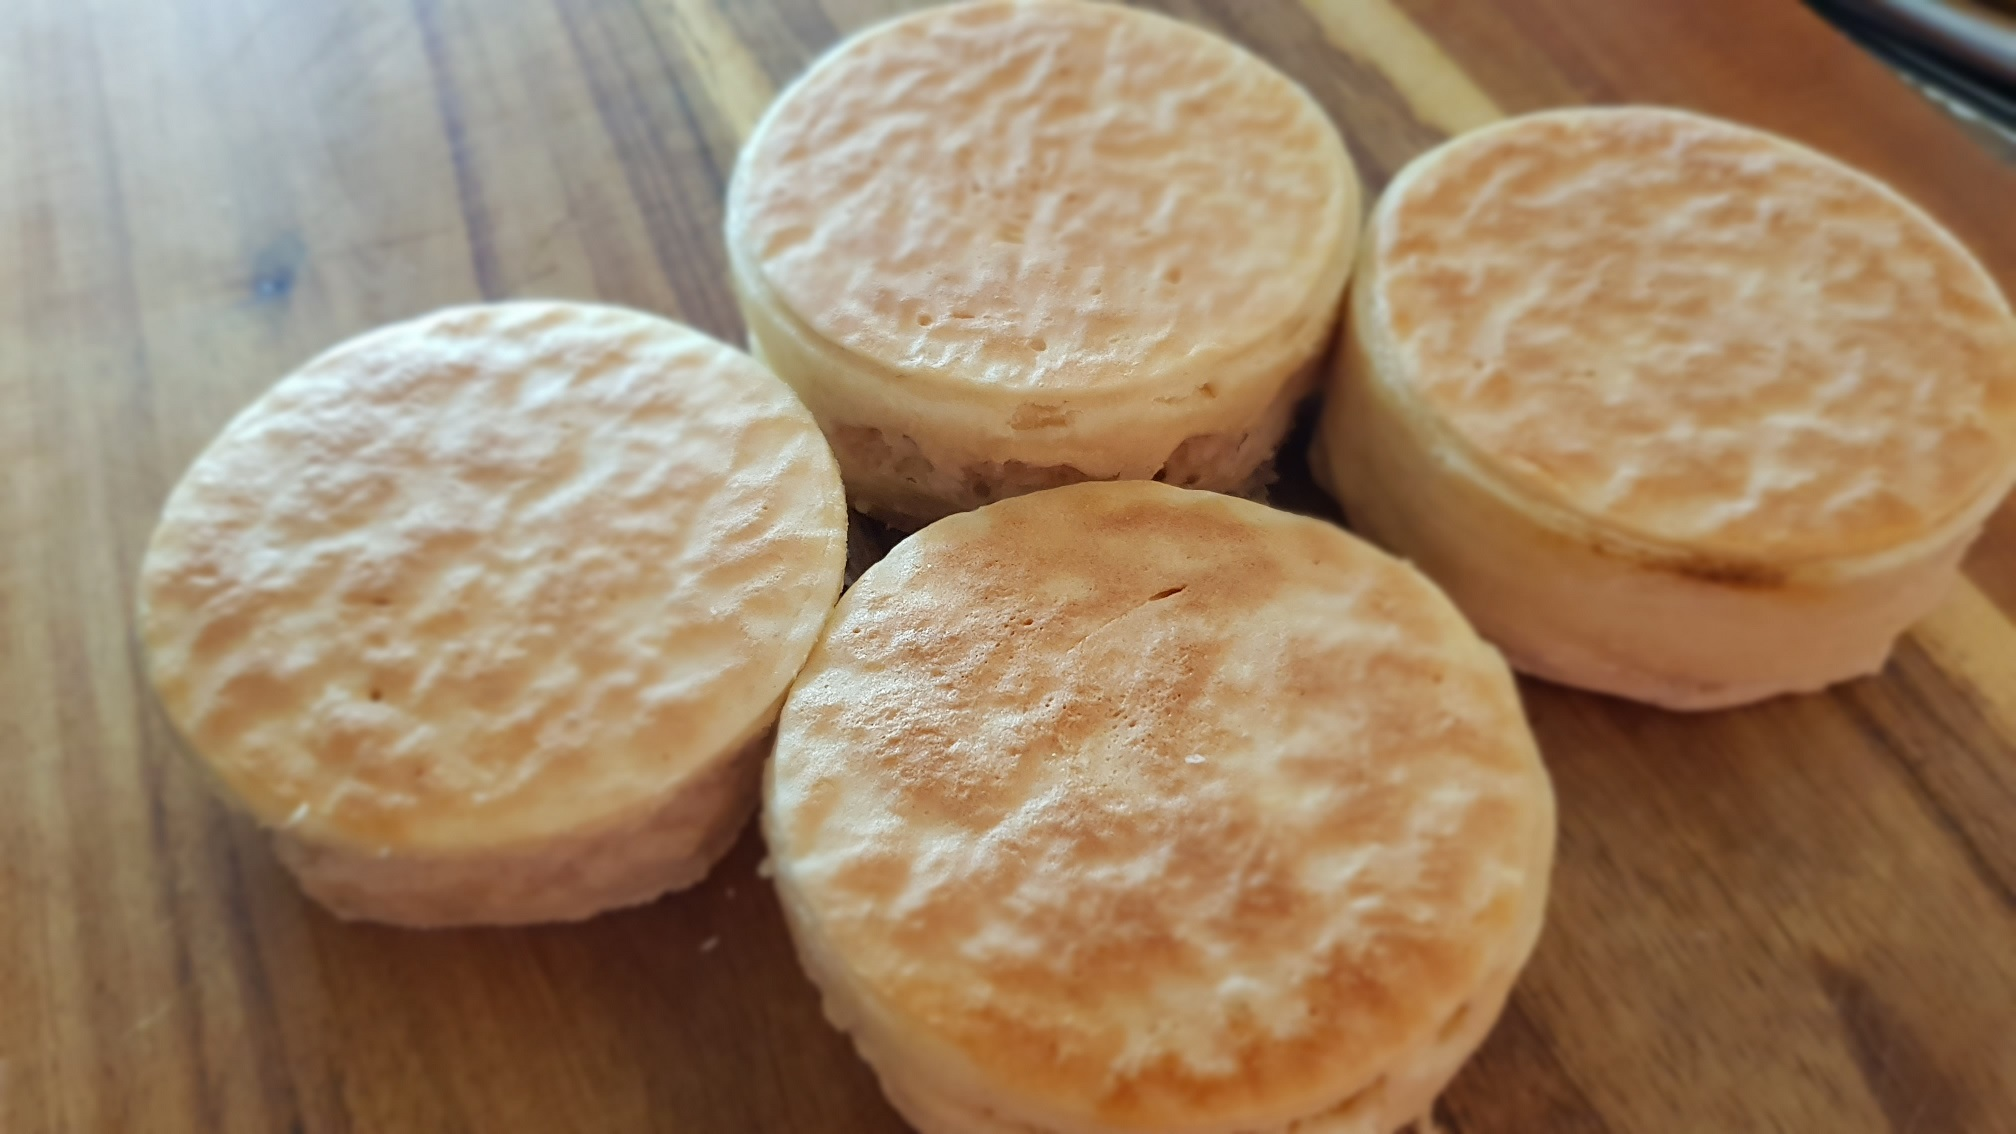 finished crumpets